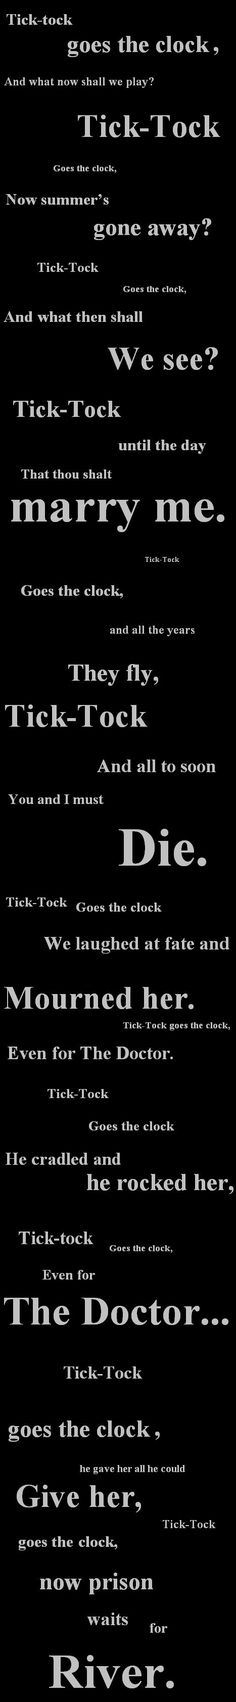 Tick tock goes the clock... or River's lullaby. Creepy and sad, altogether... <<< Yes.